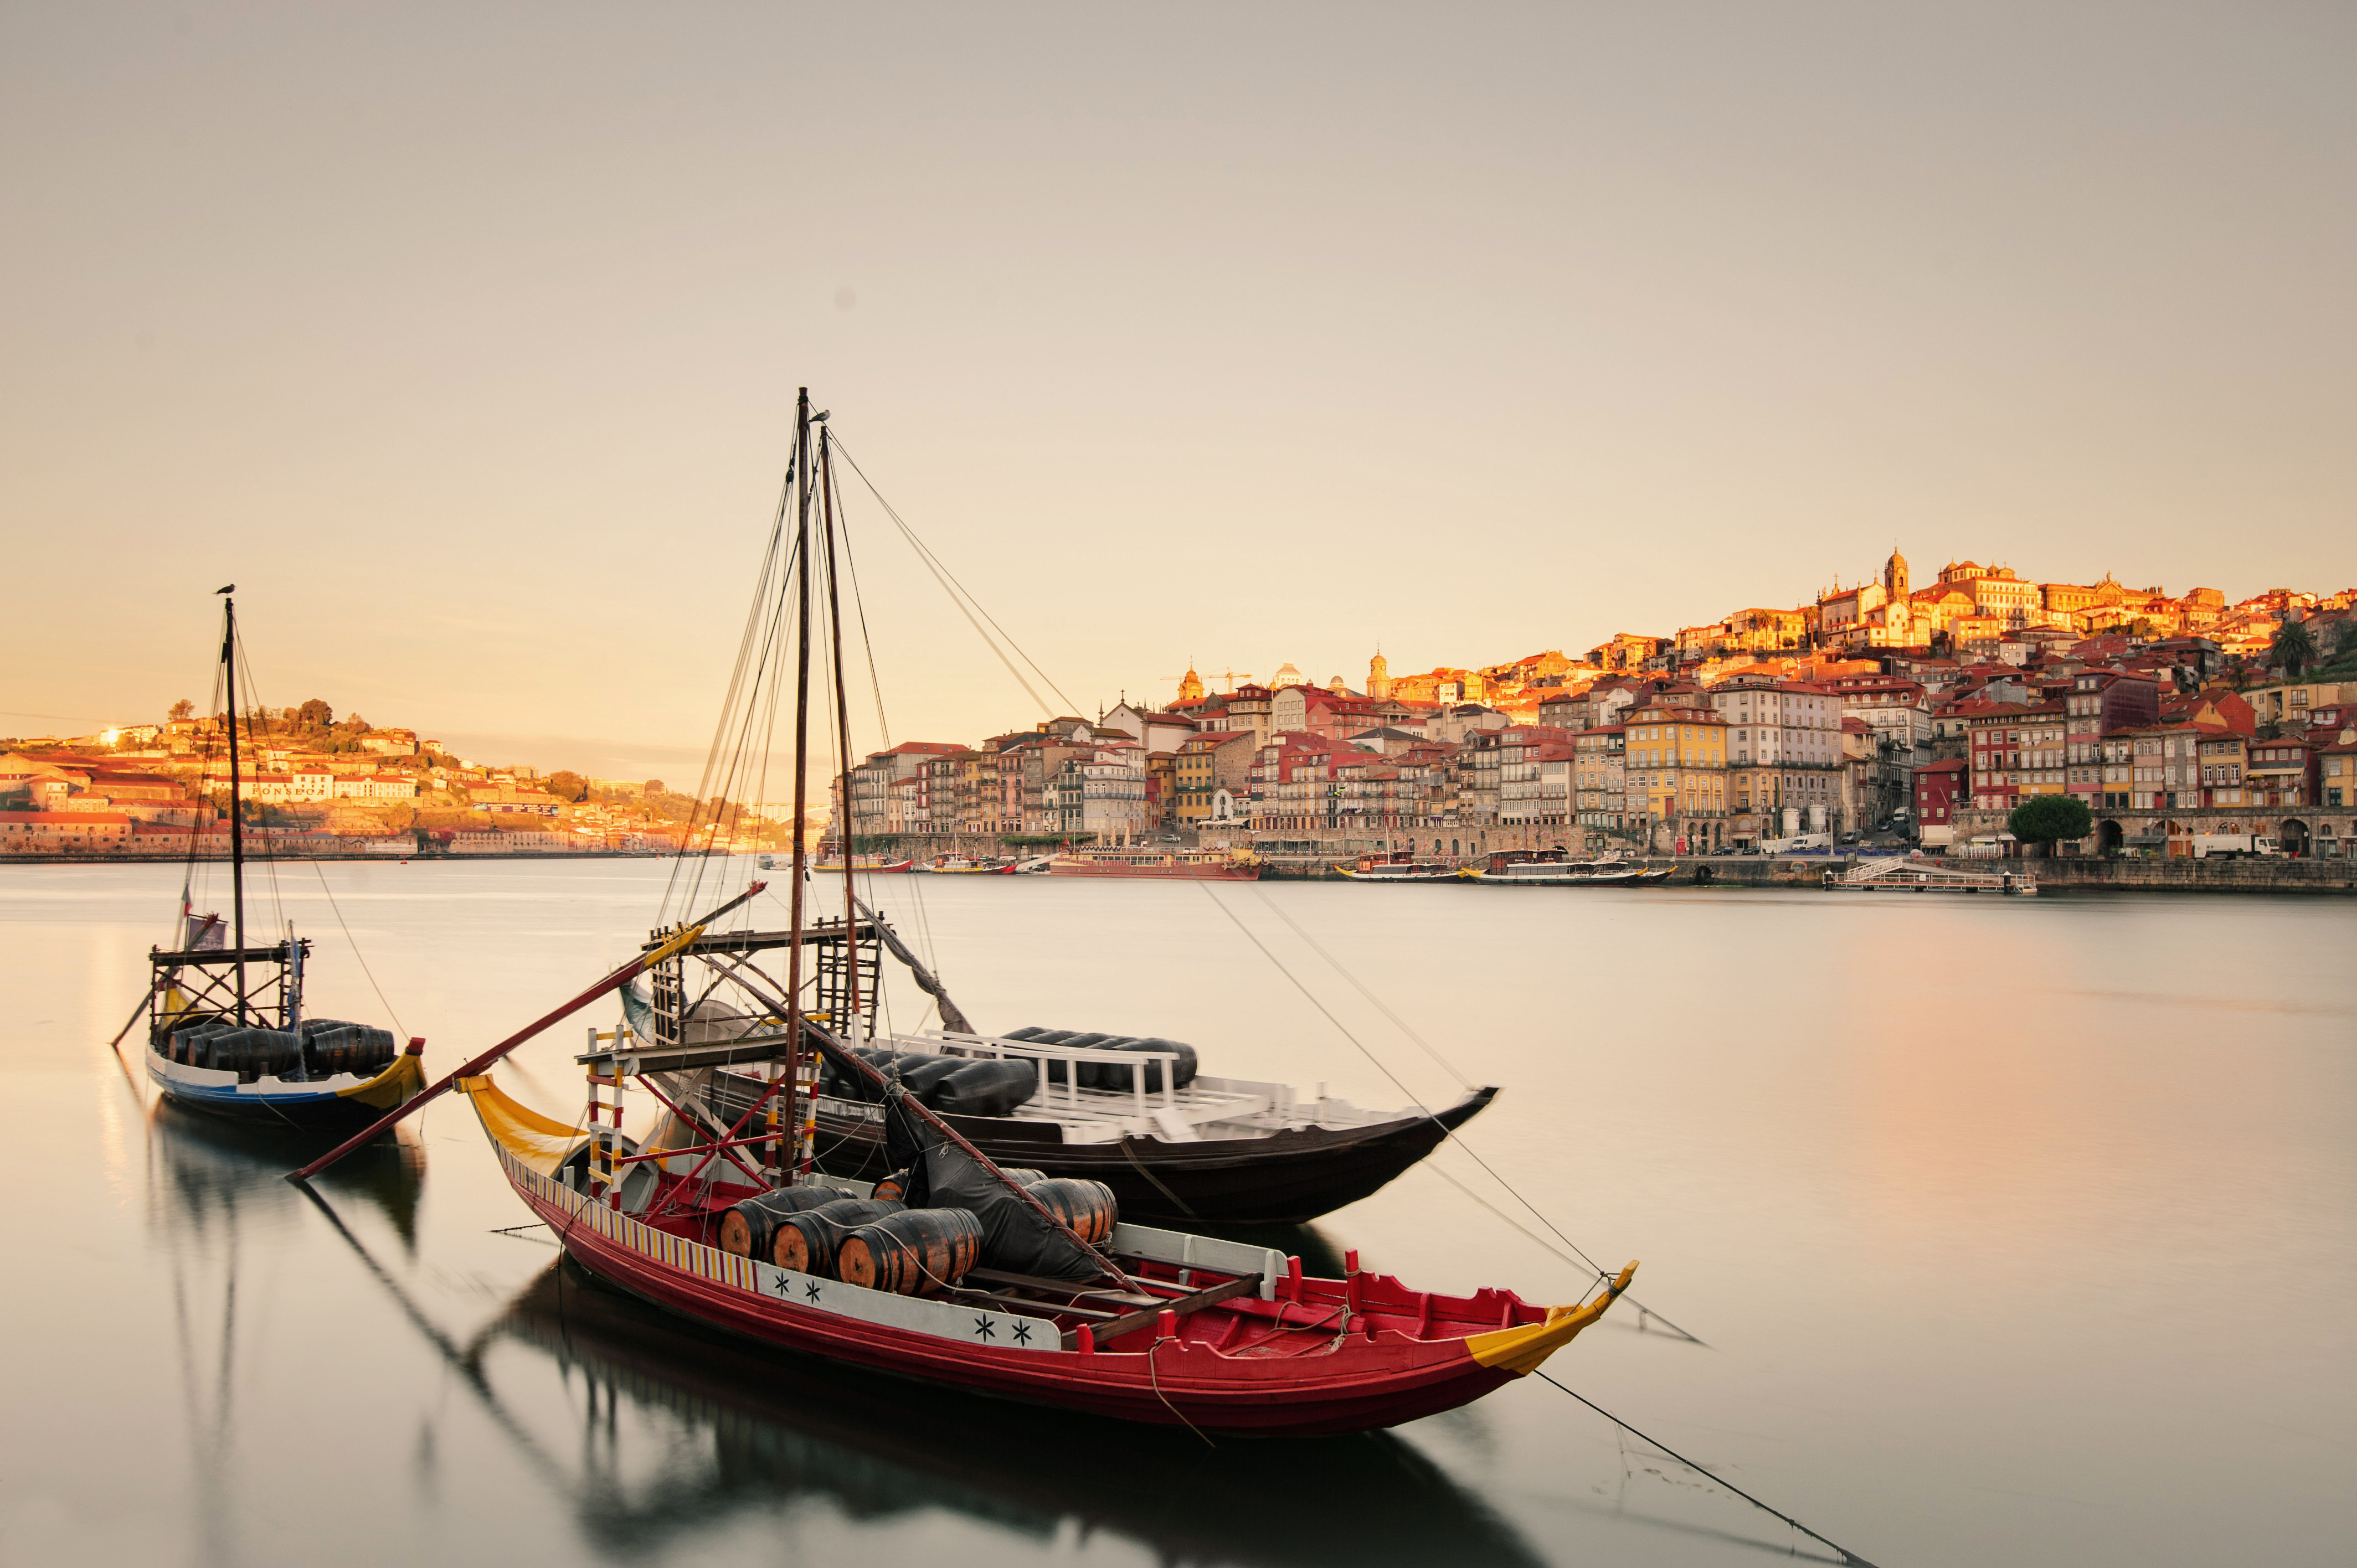 Boats in the Porto